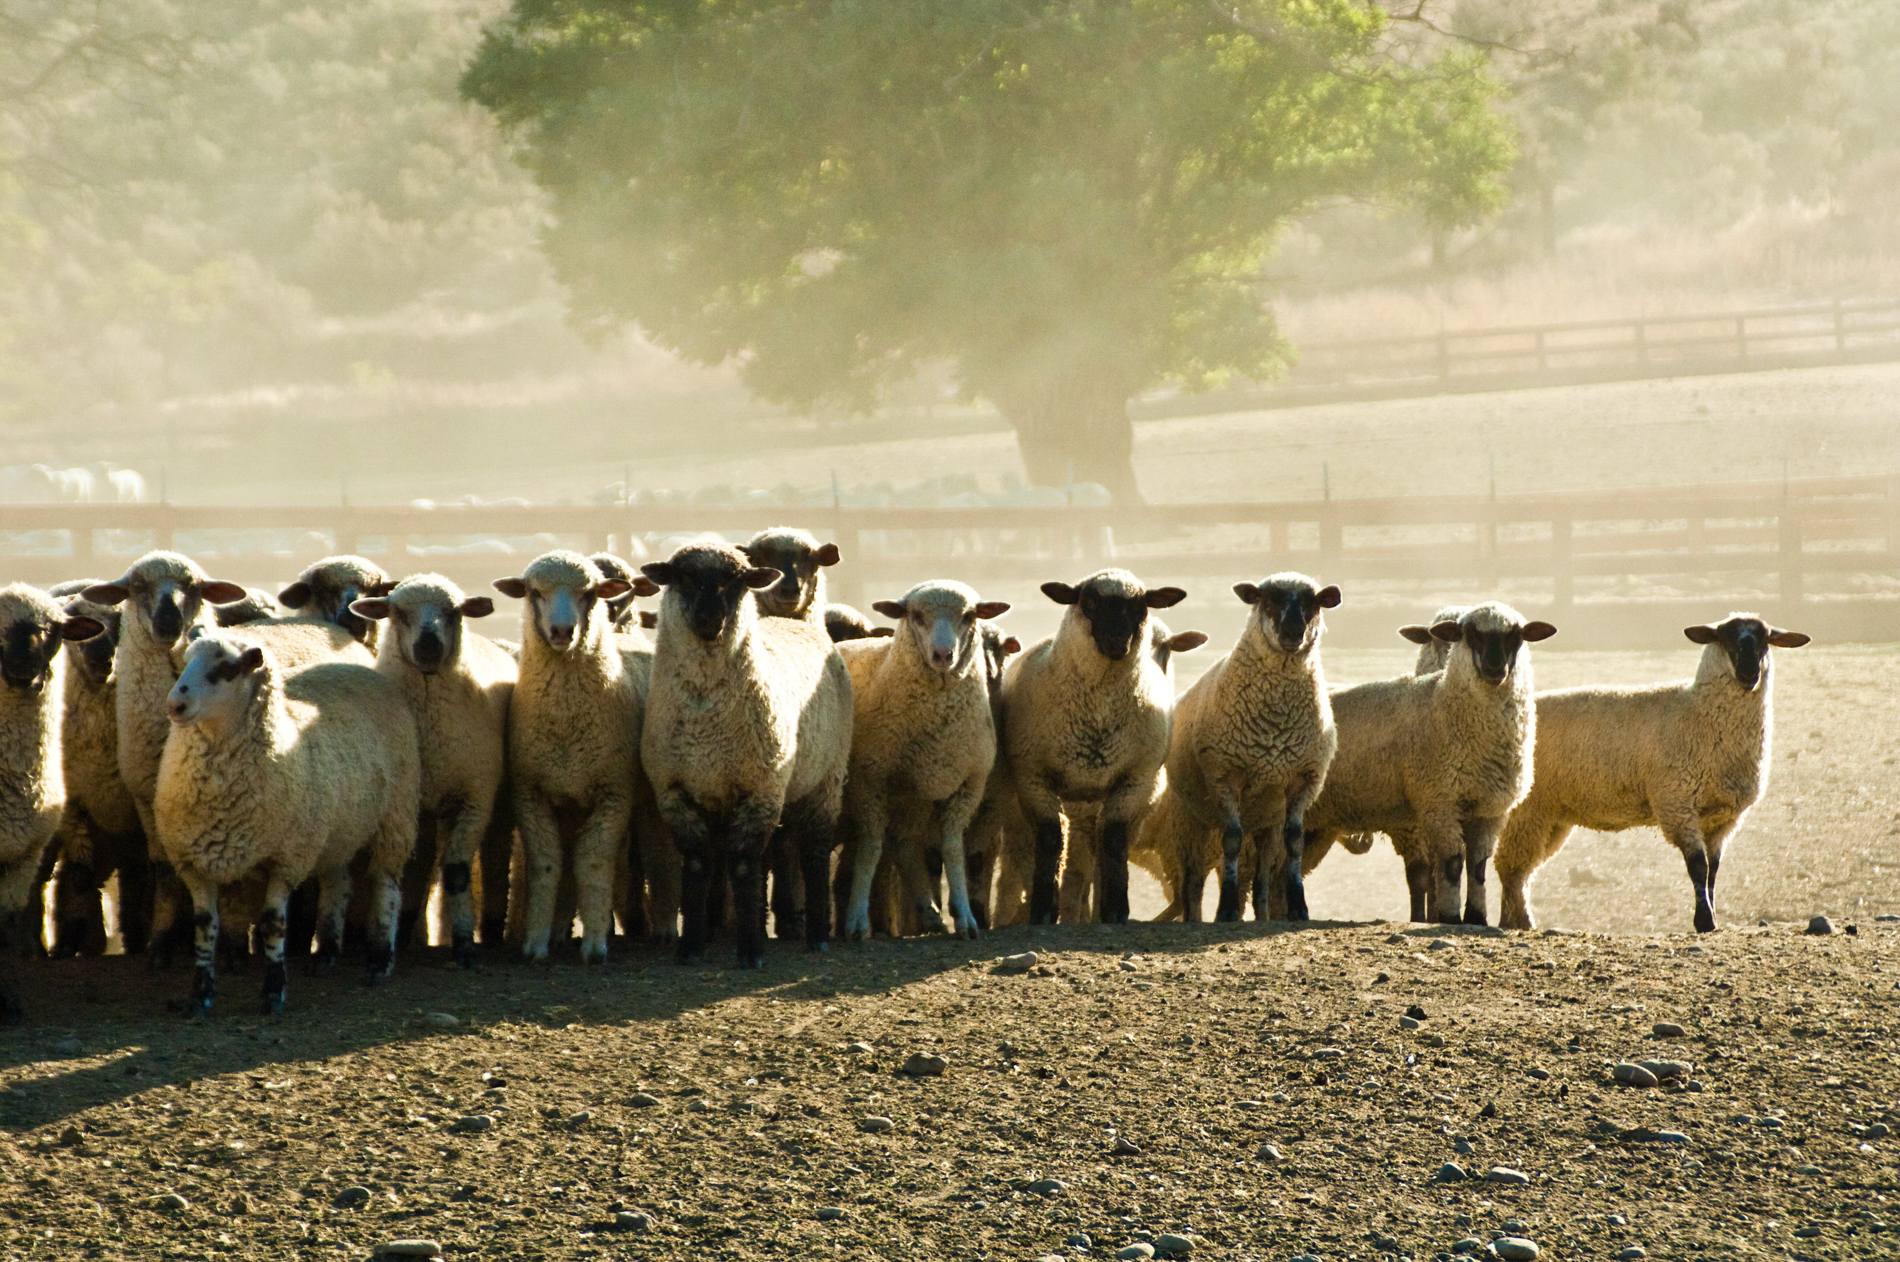 Sheep All in a Row